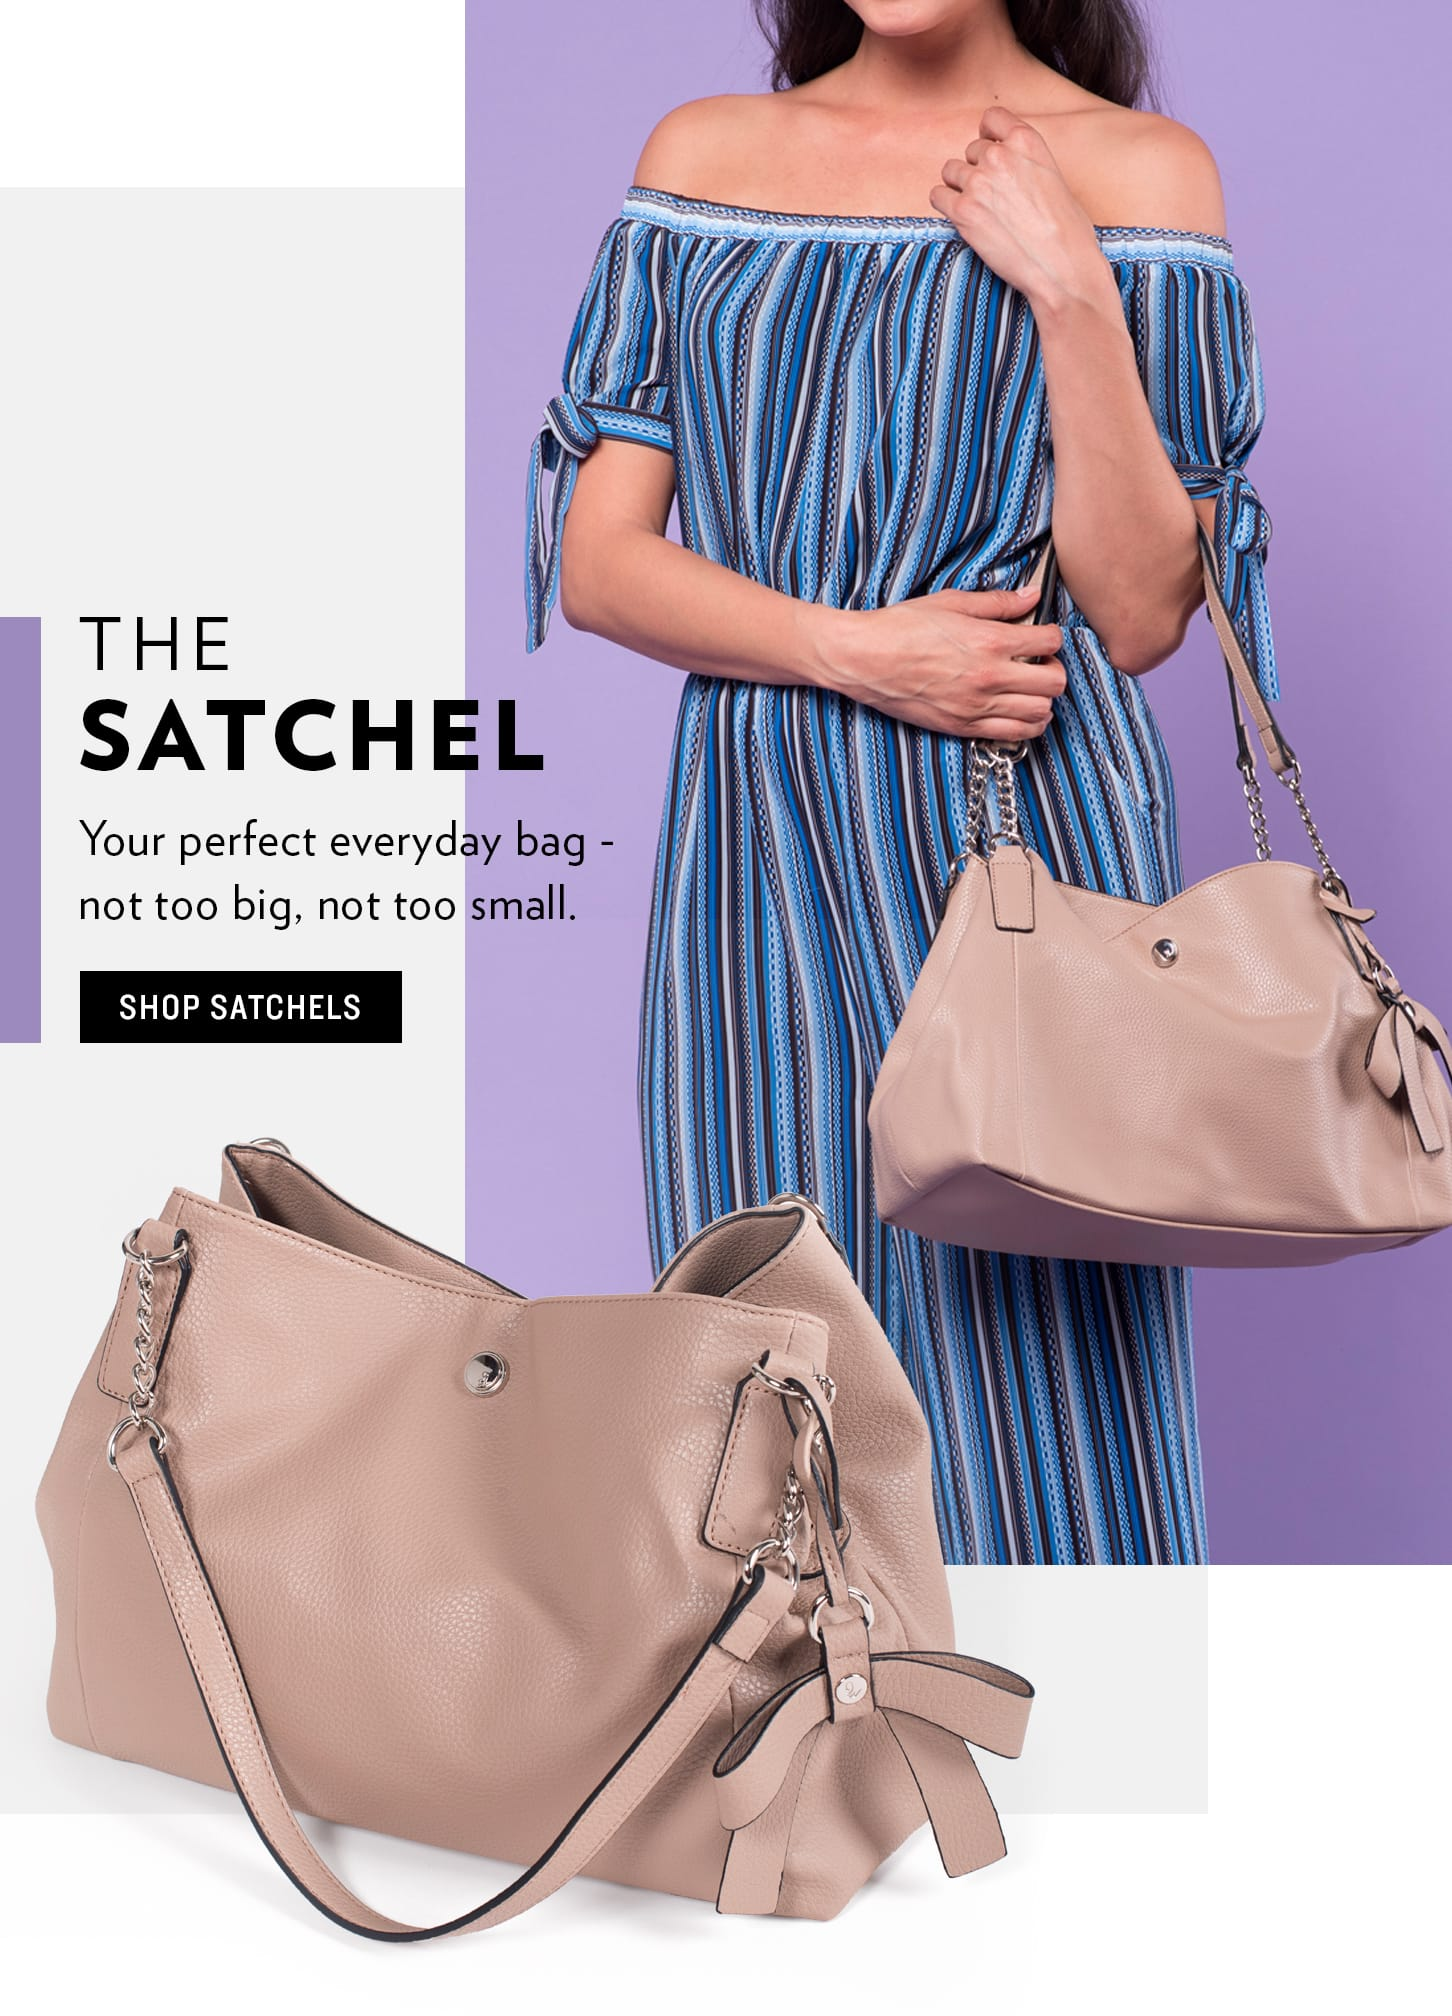 Shop Satchels